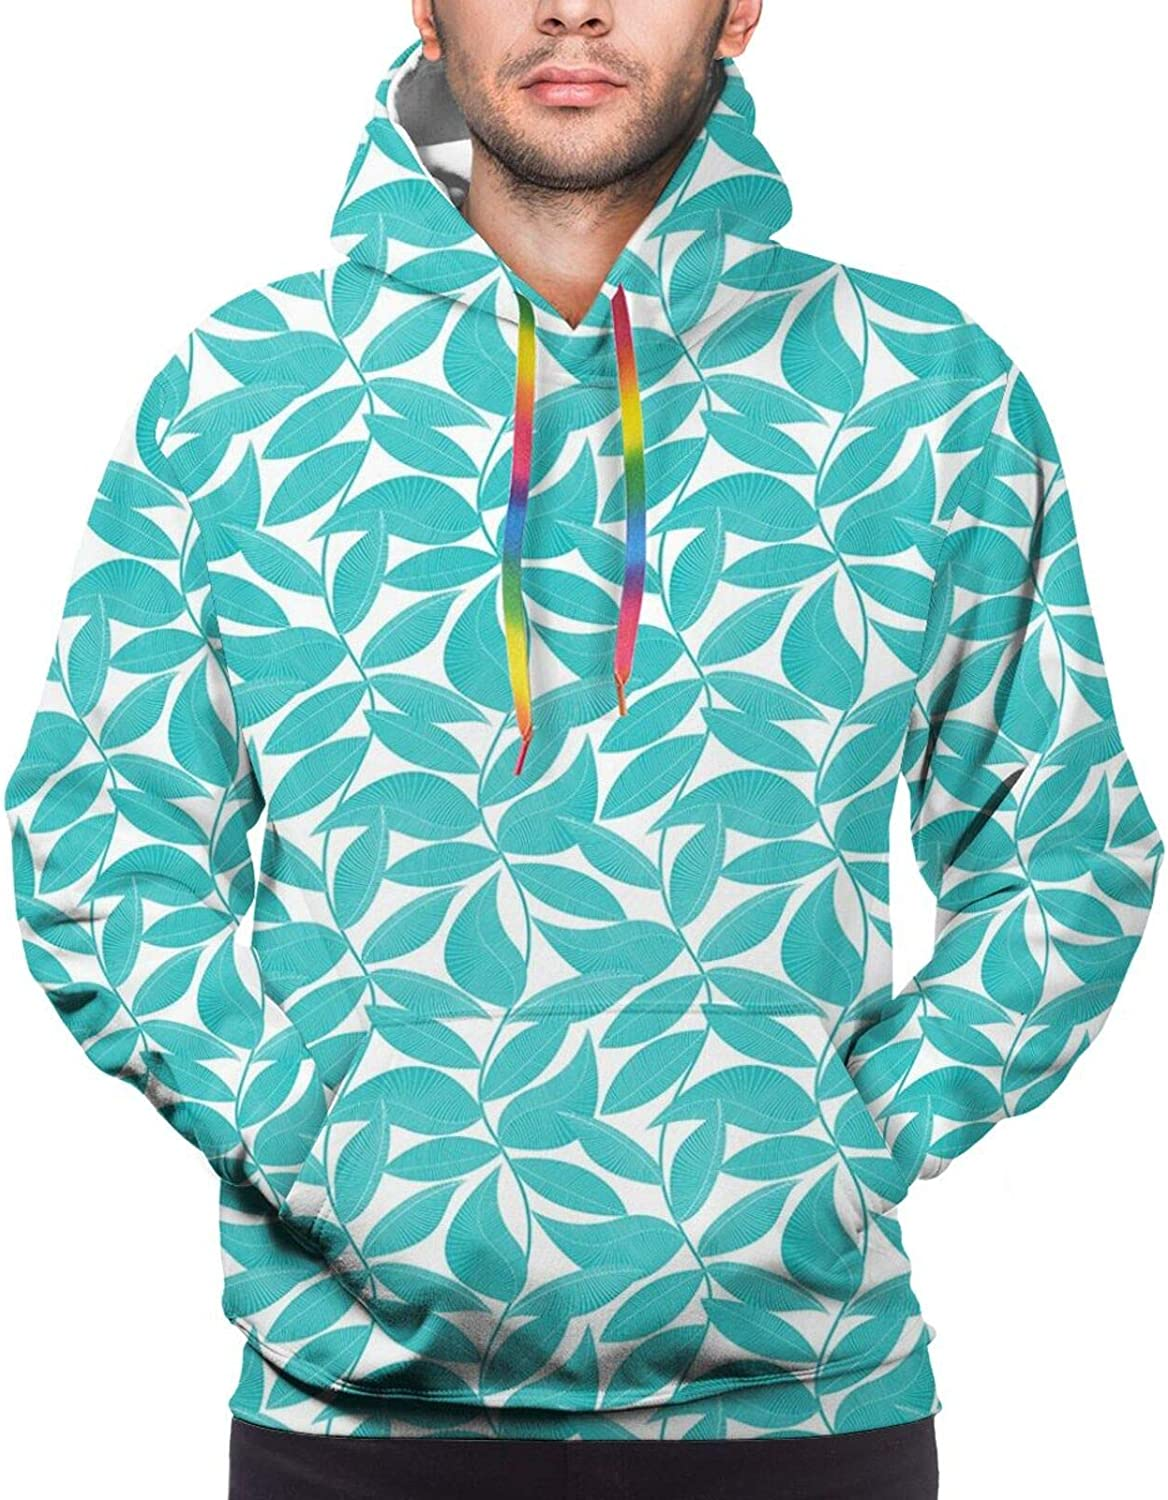 Men's Hoodies Sweatshirts,Foliage Pattern with Dark Toned Backdrop Doodle Style Composition of Nature Image